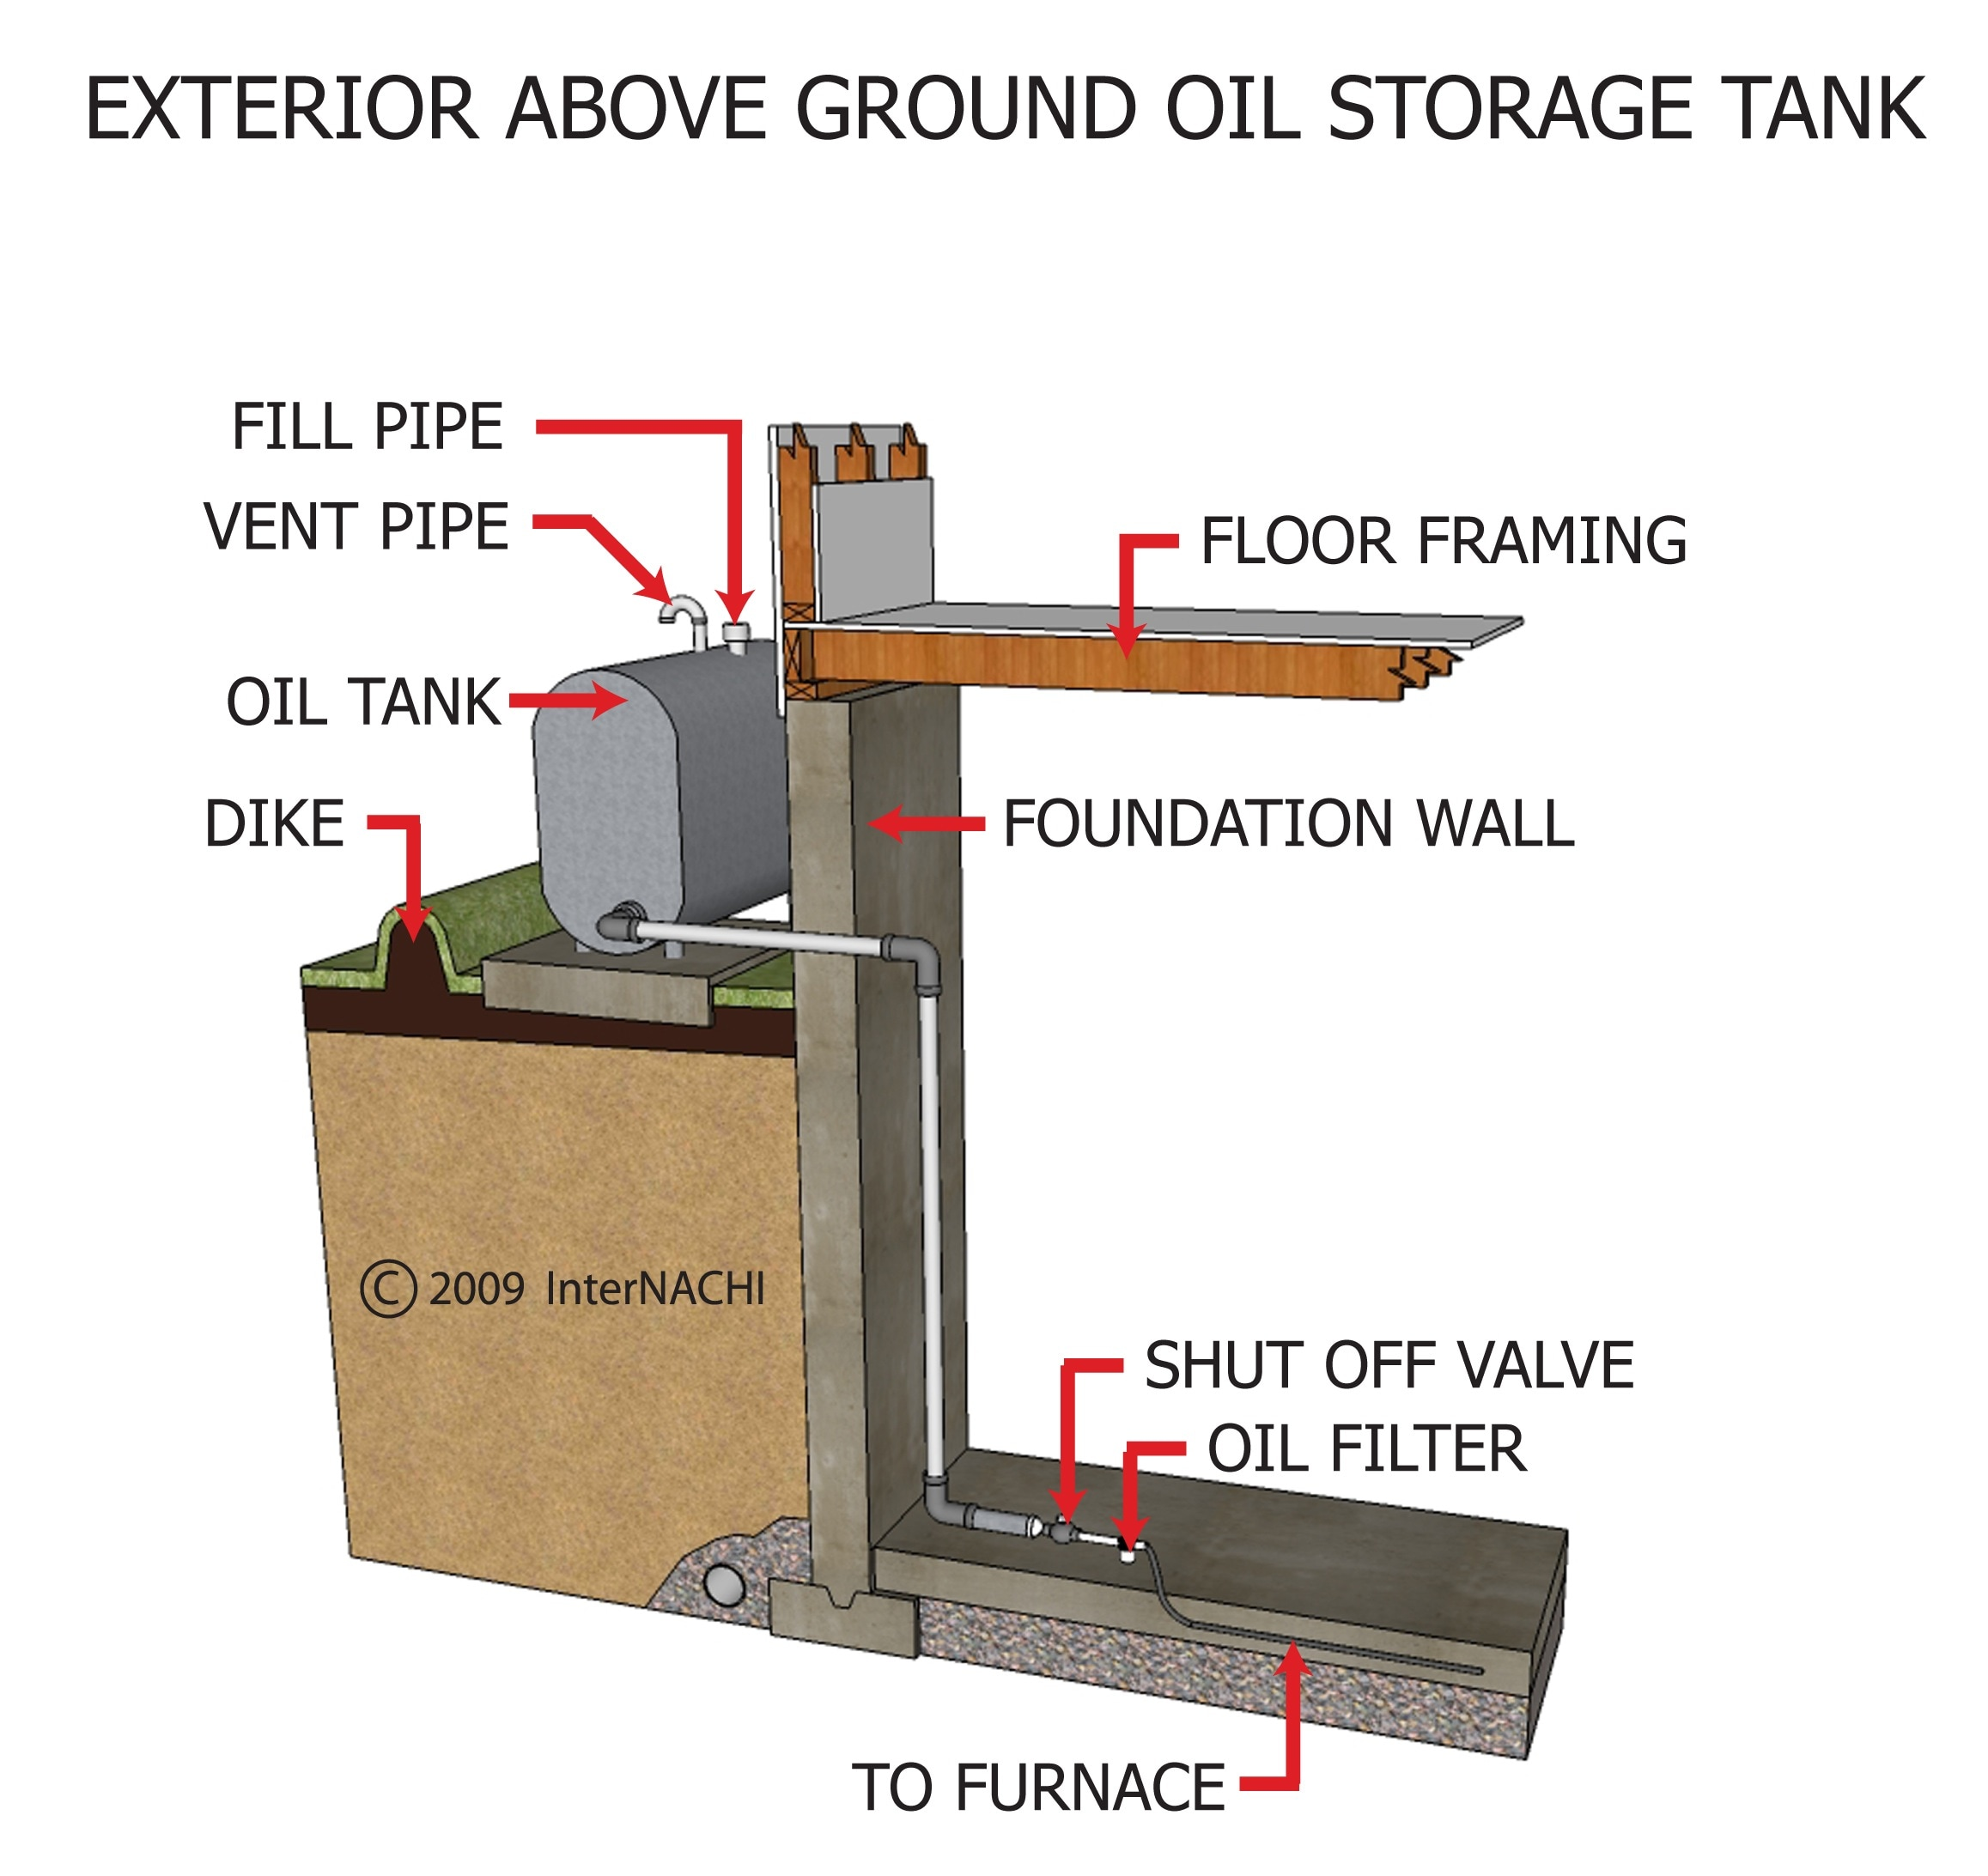 Exterior, above-ground oil storage tank.